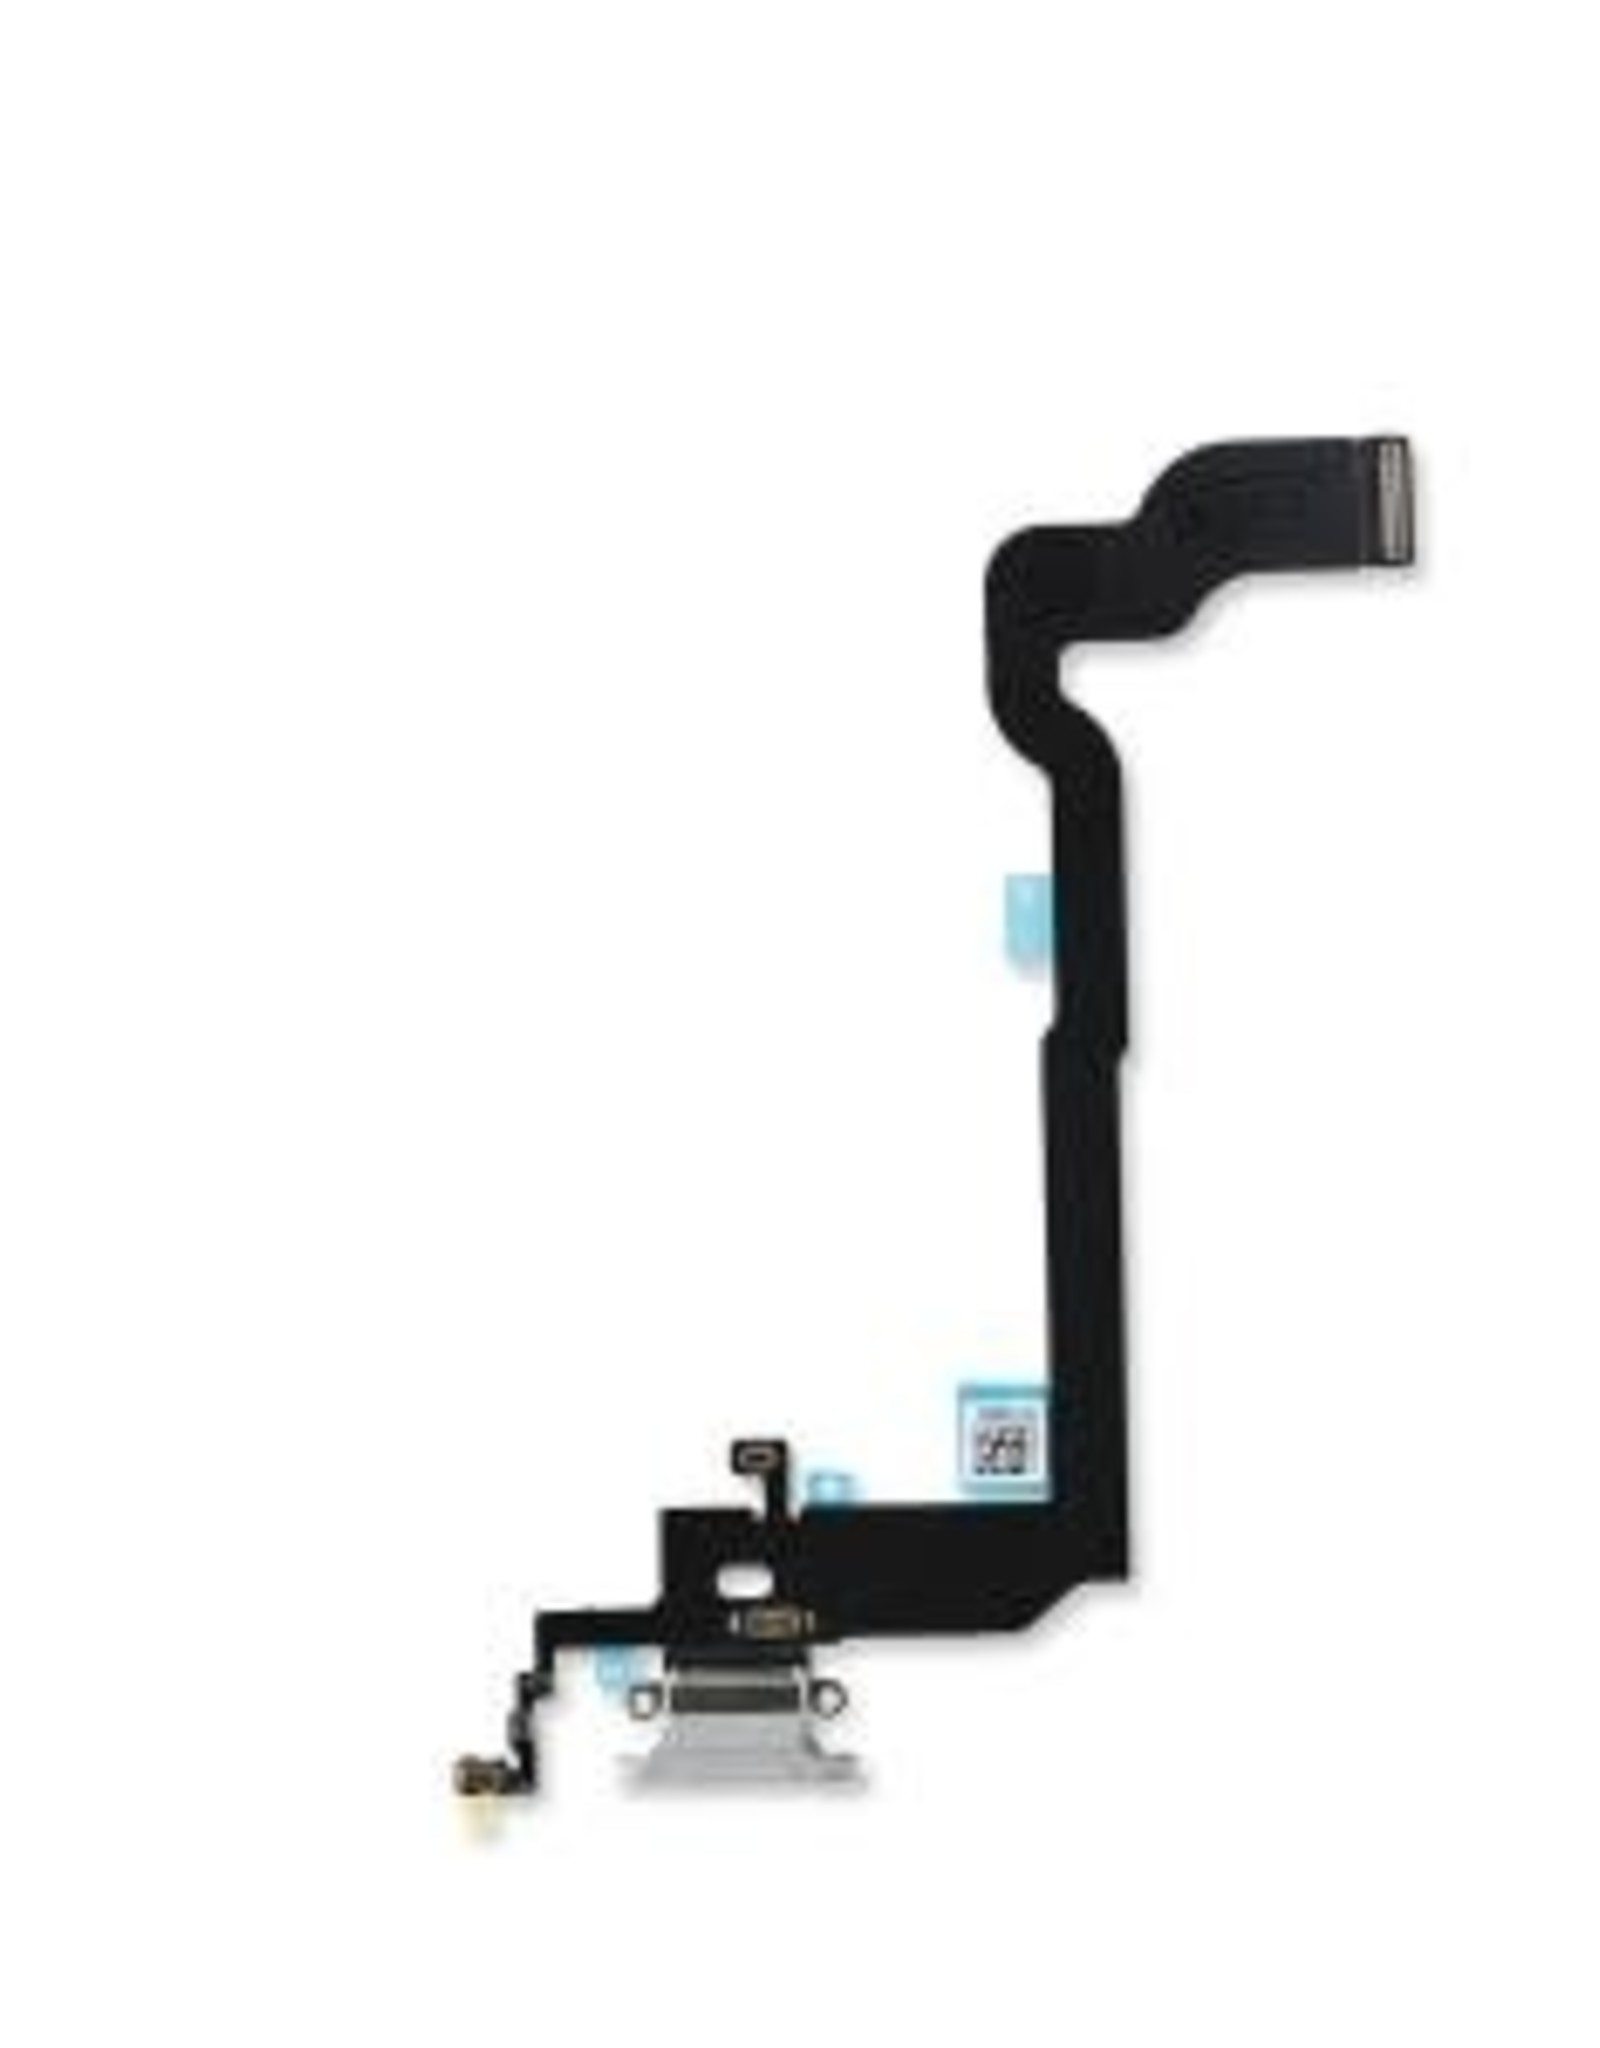 Apple iPhone Charging Port USB Dock Connector Flex Cable Assembly Replacement for iPhone X(Silver)